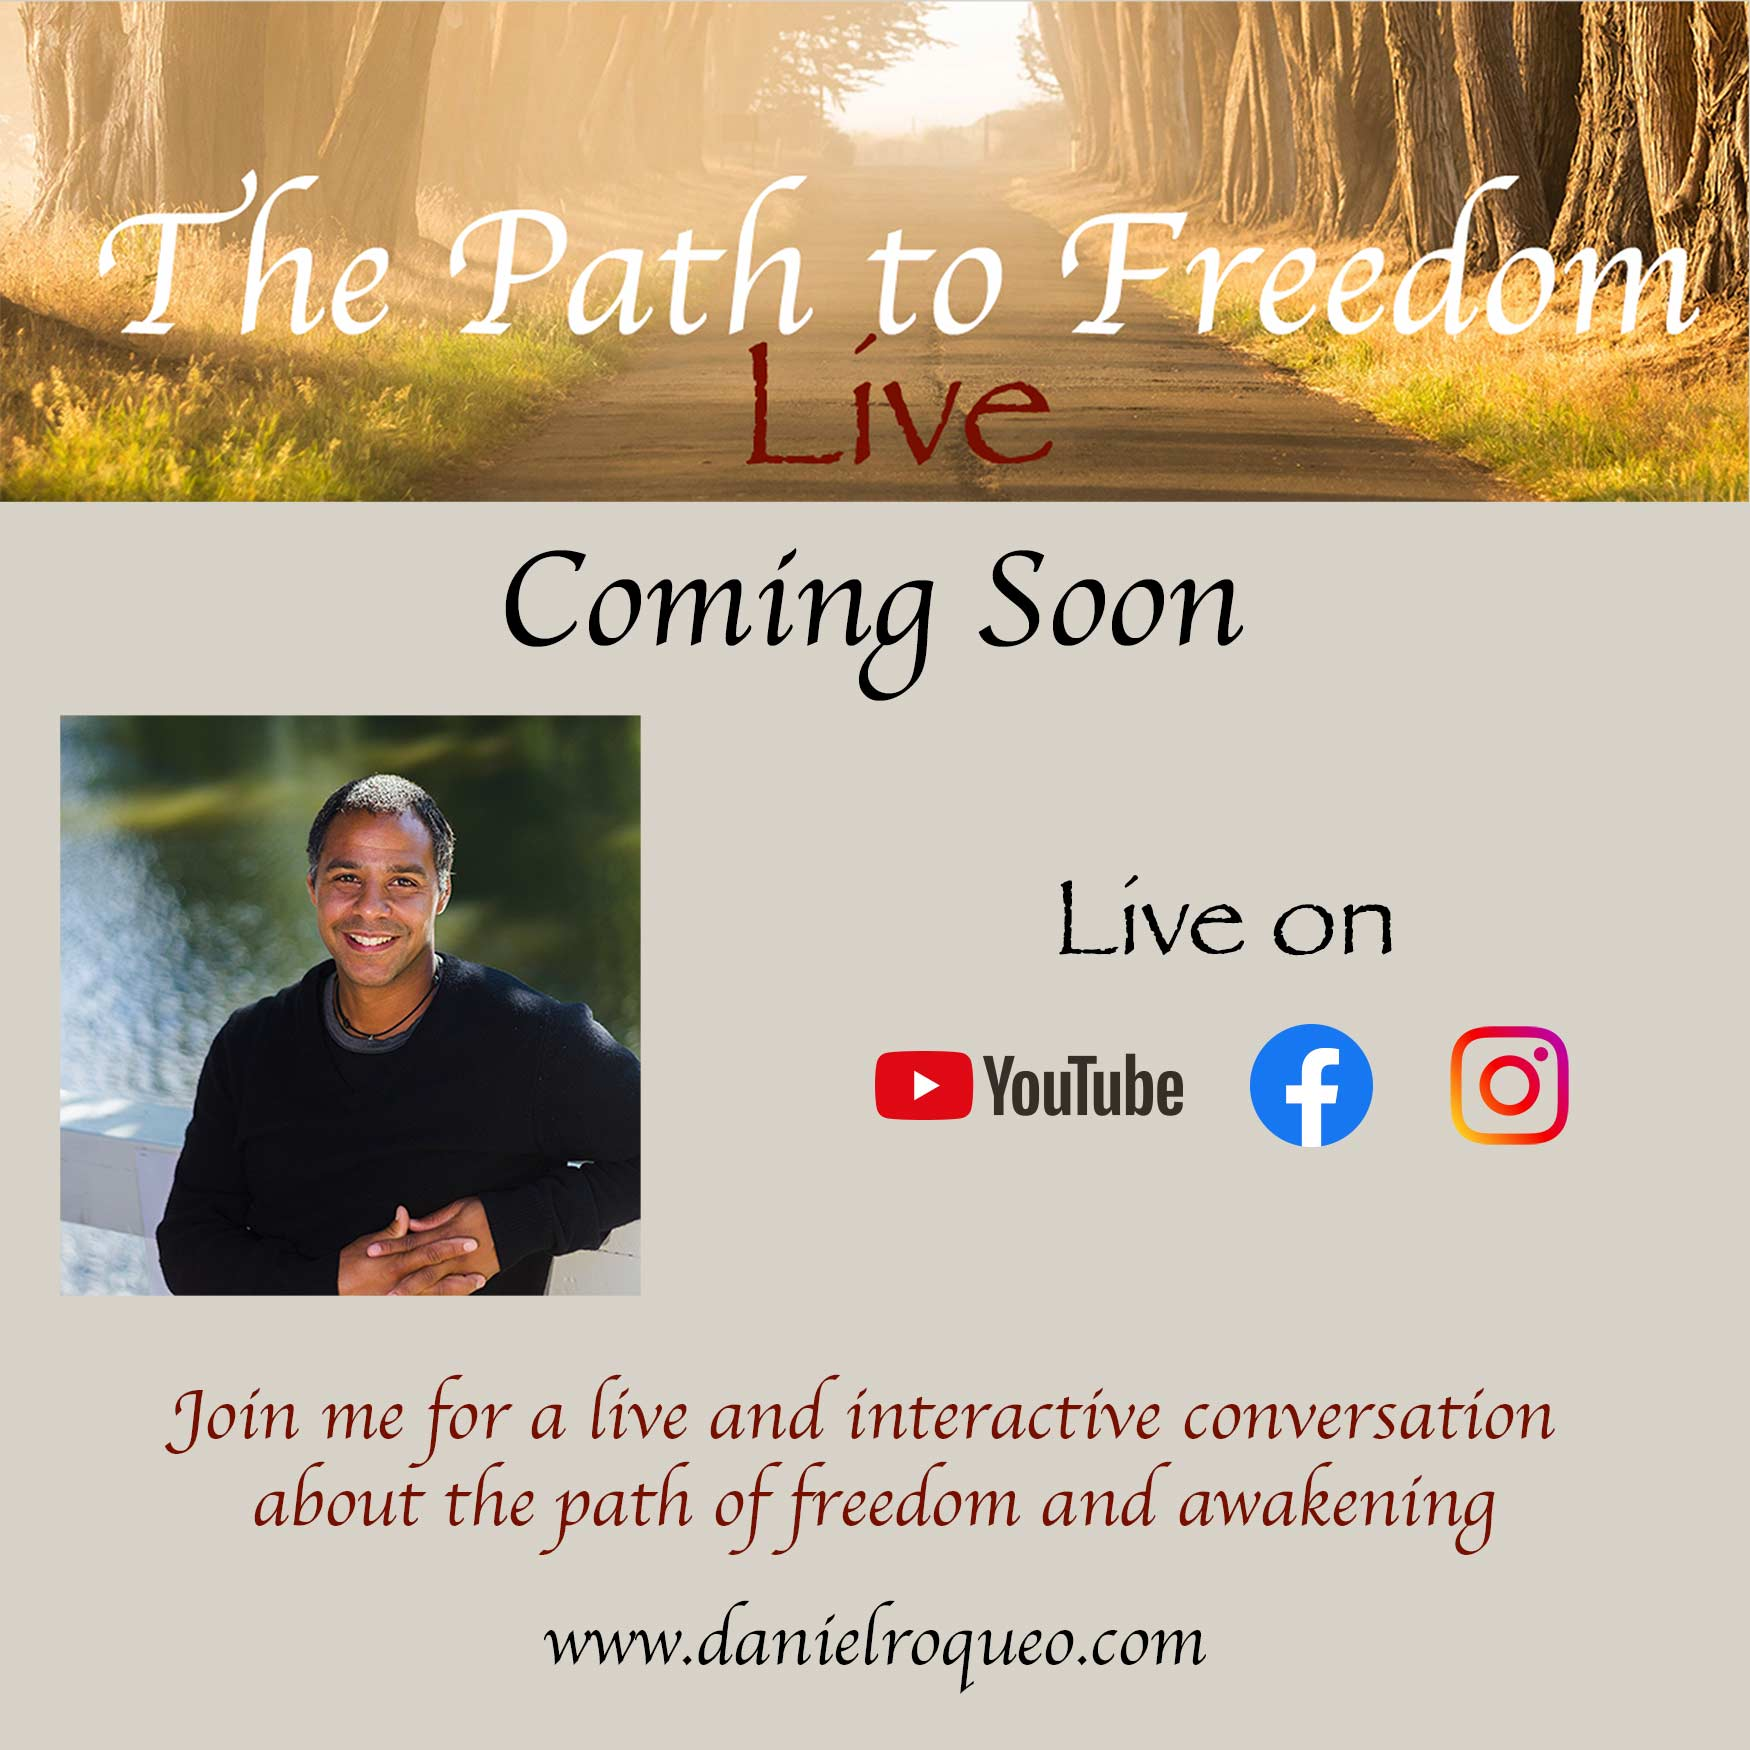 The path to freedom live